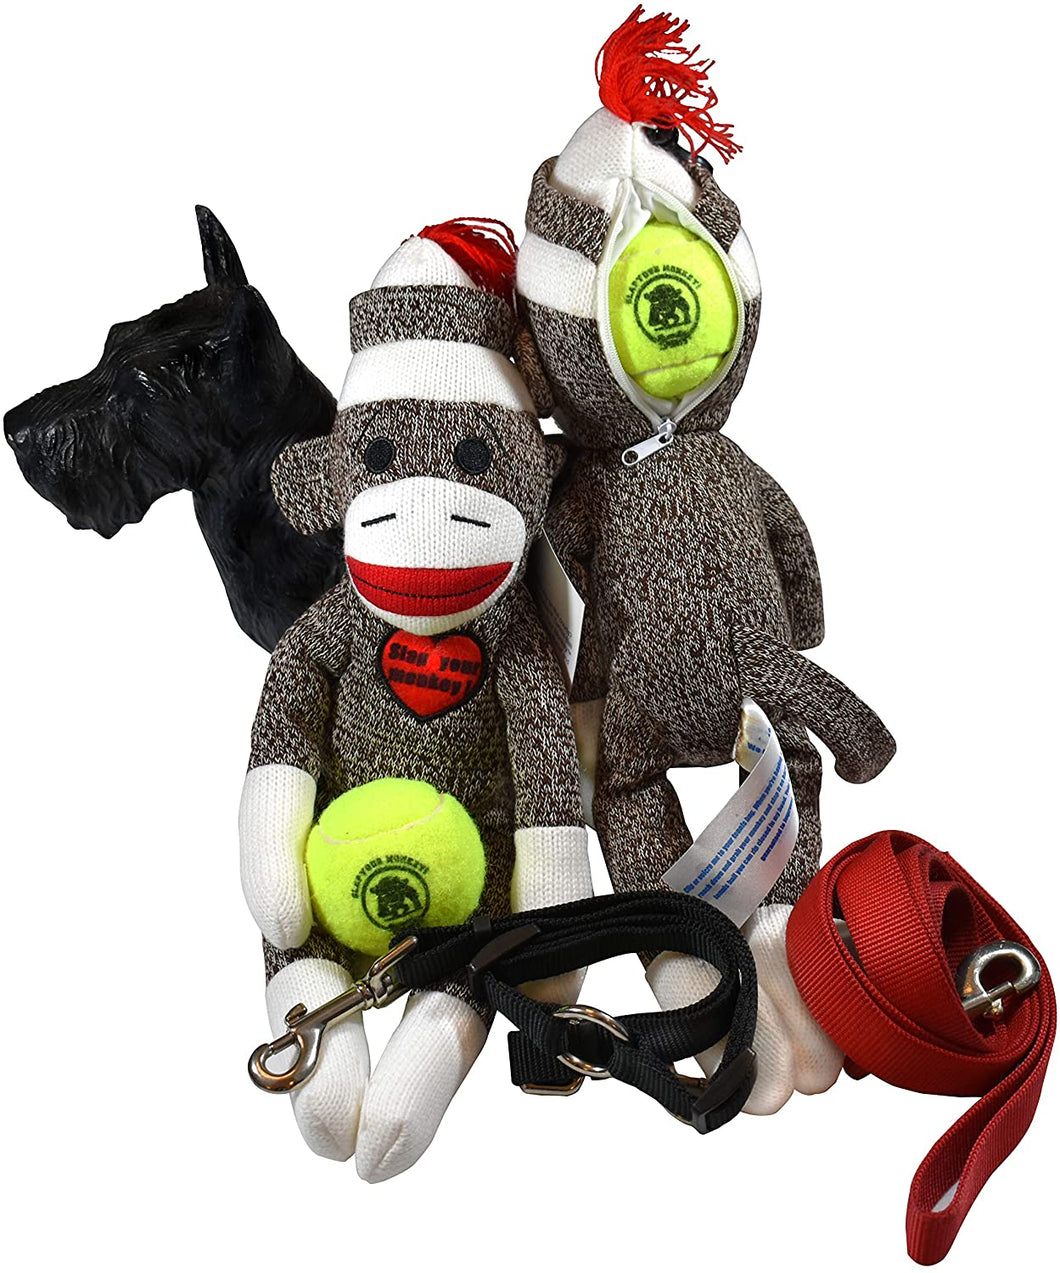 Unique Sock Monkey Squeaky Dog Chew Toy w/Bone & Ball in Head